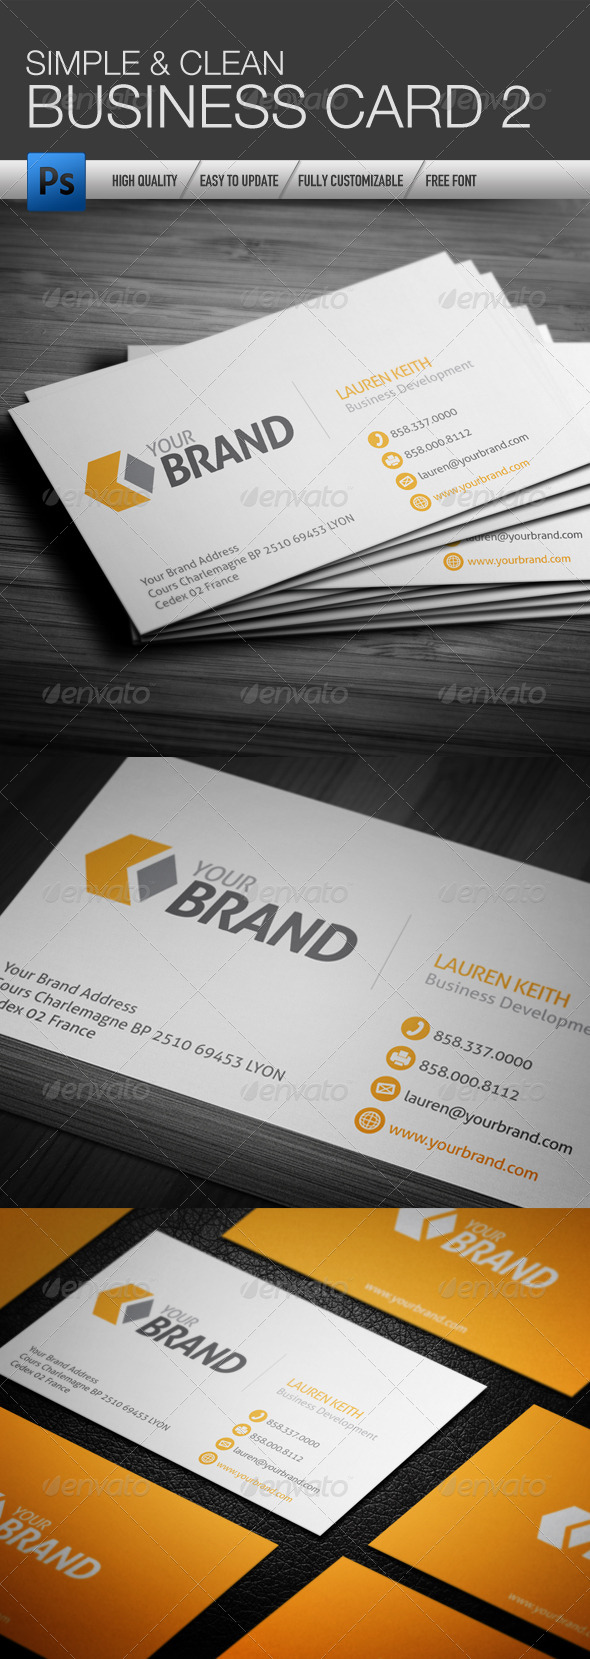 GraphicRiver Simple and Clean Business Card 2 4361703